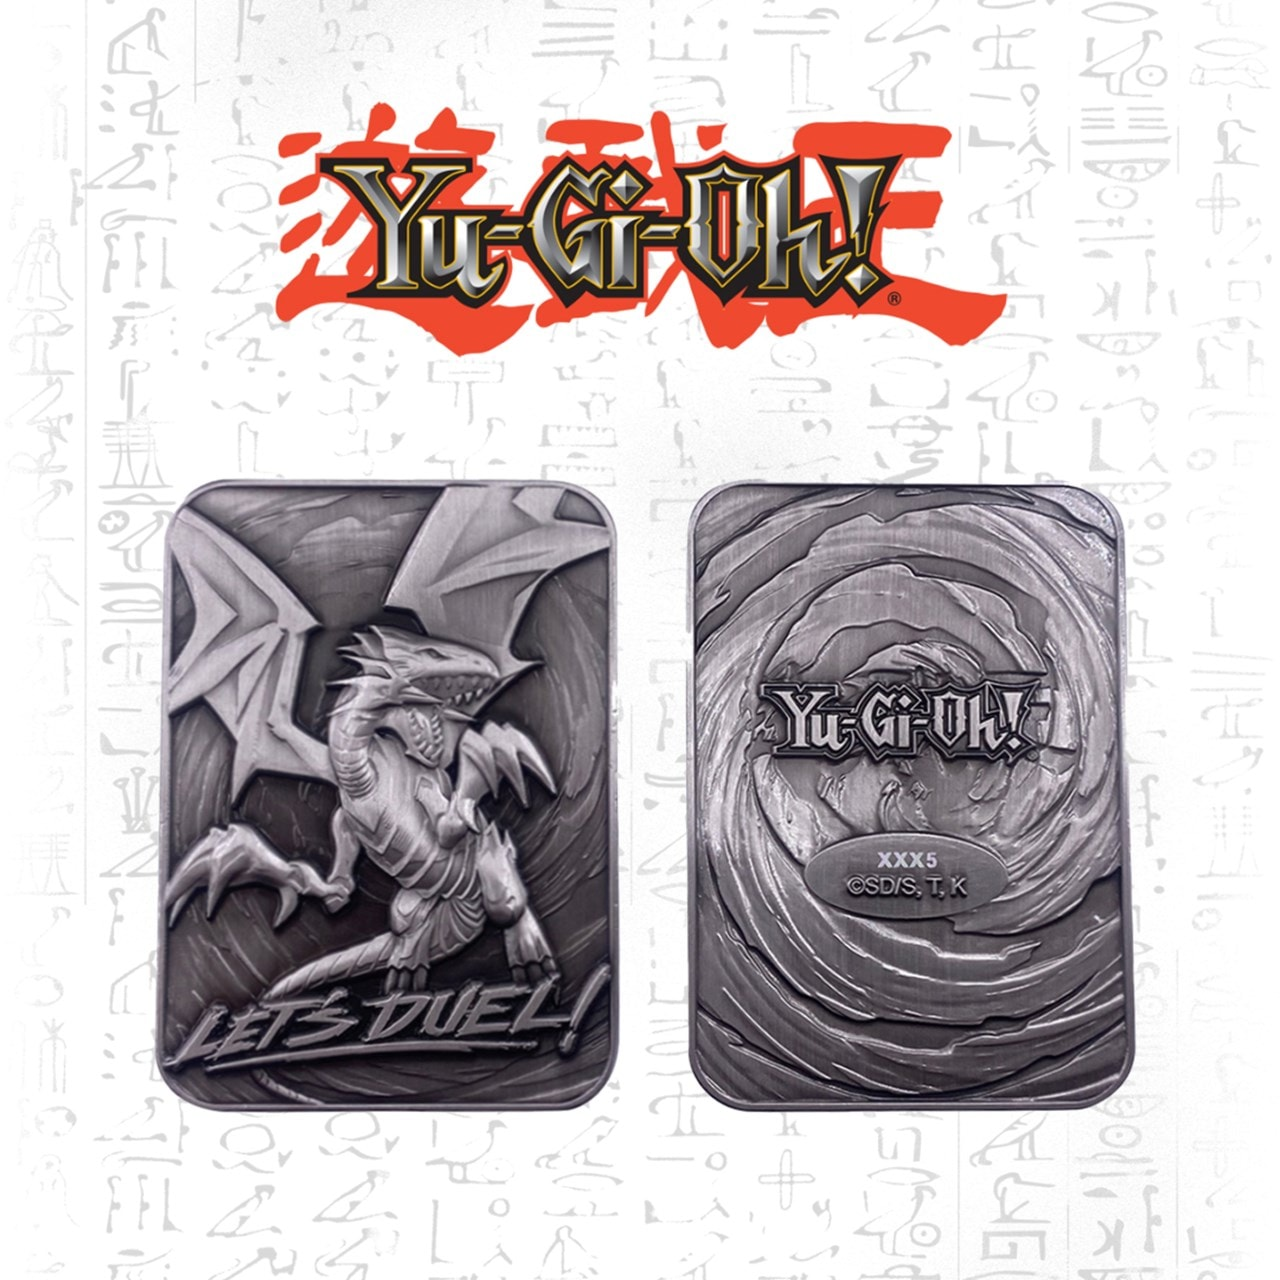 Blue Eyes White Dragon: Yu-Gi-Oh! Metal Collectible - 1